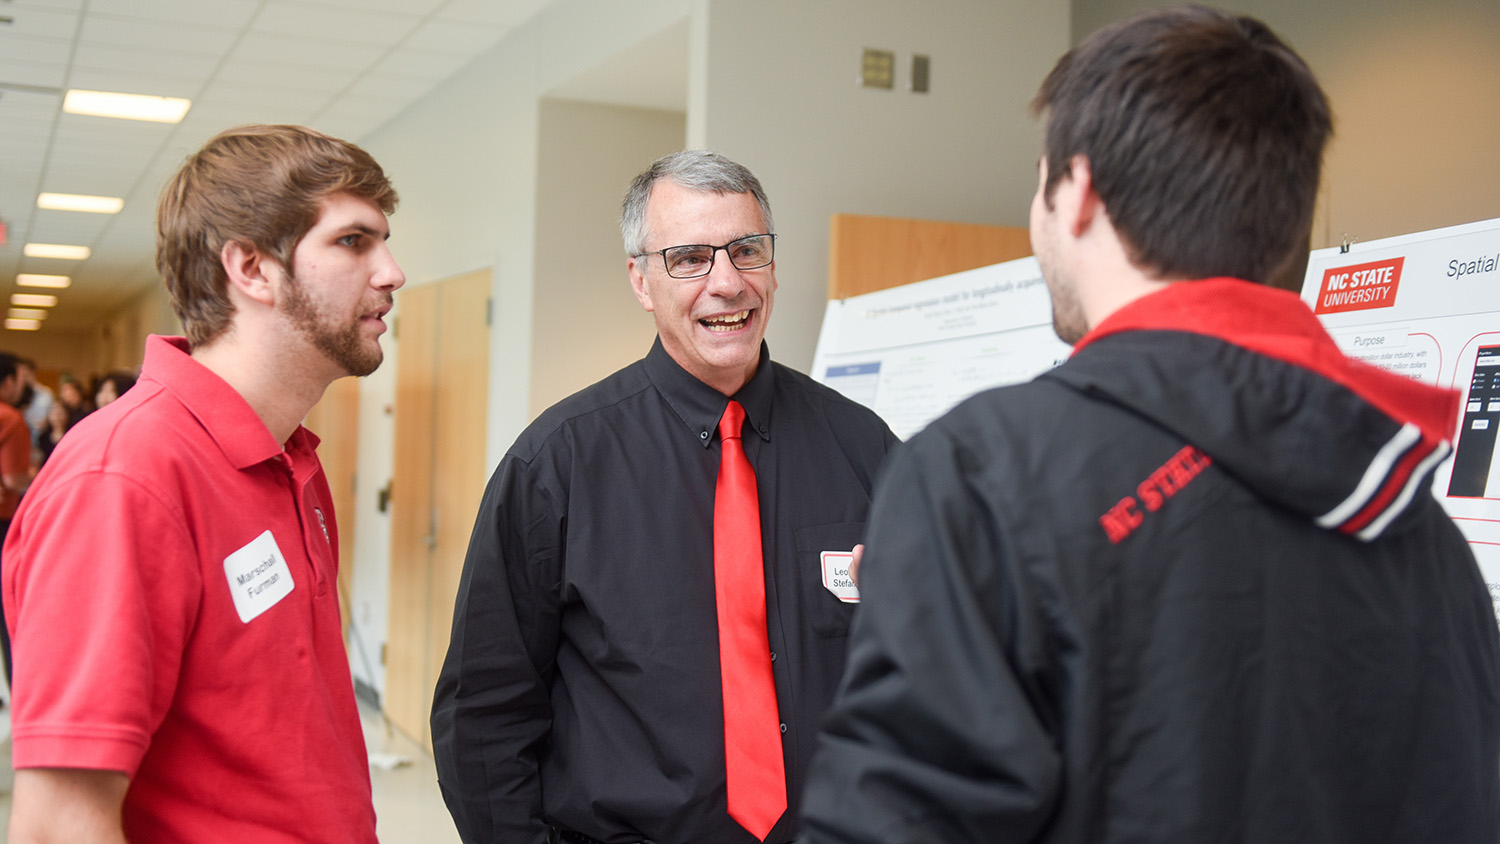 Len Stefanski talks with two students